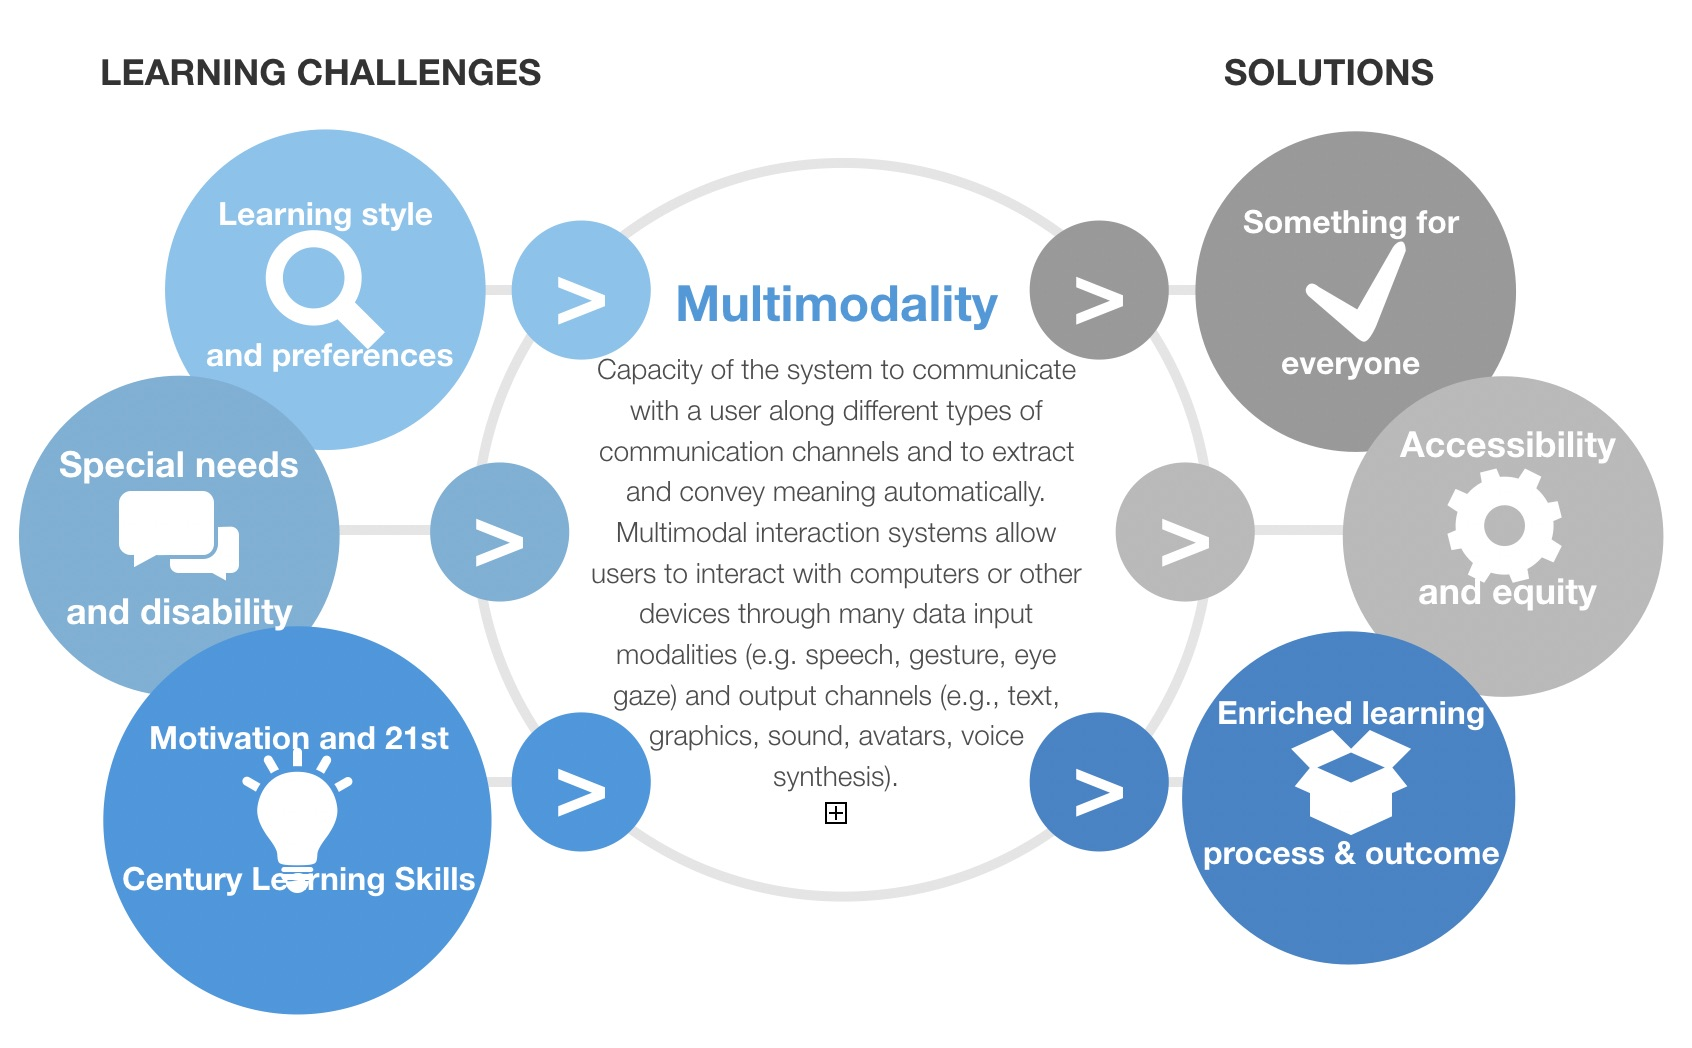 Figure 2. Transforming learning experiences with multimodality.